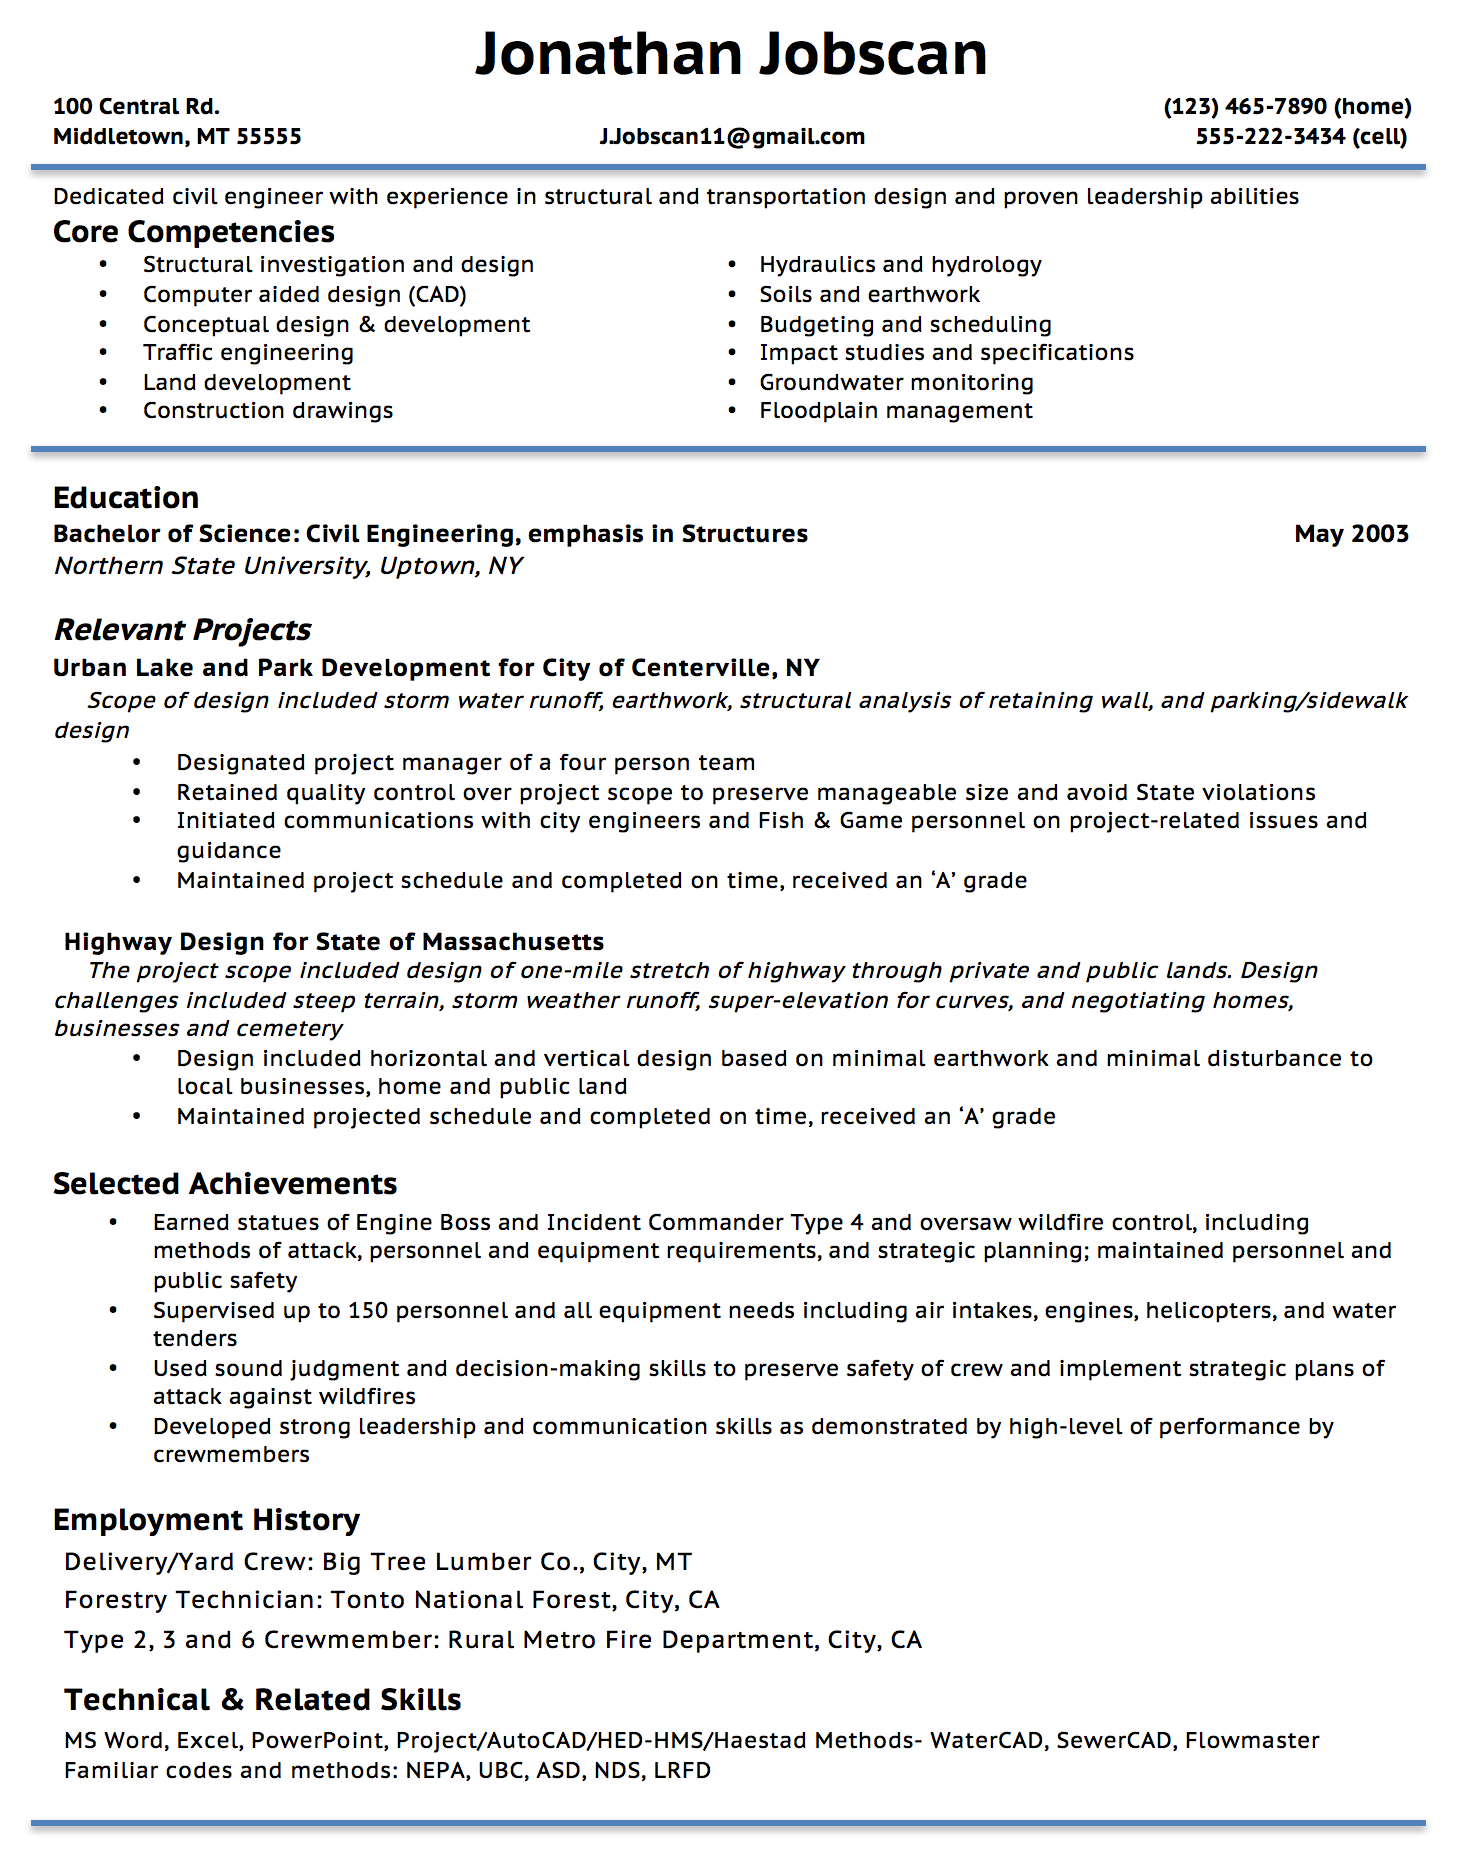 covering gaps in employment. Resume Example. Resume CV Cover Letter